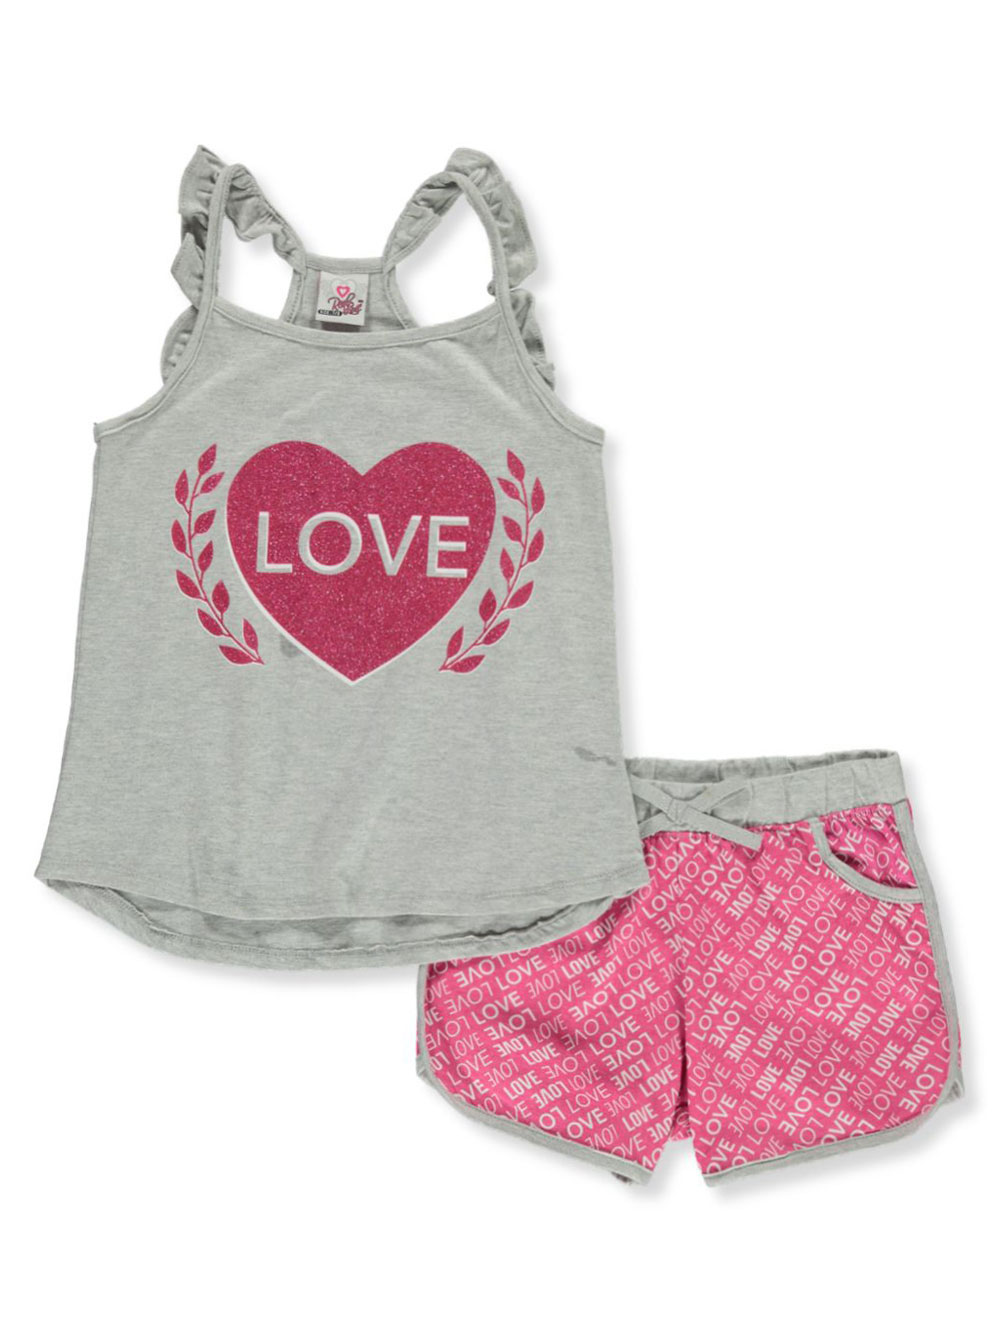 Size 14-16 Short Sets for Girls